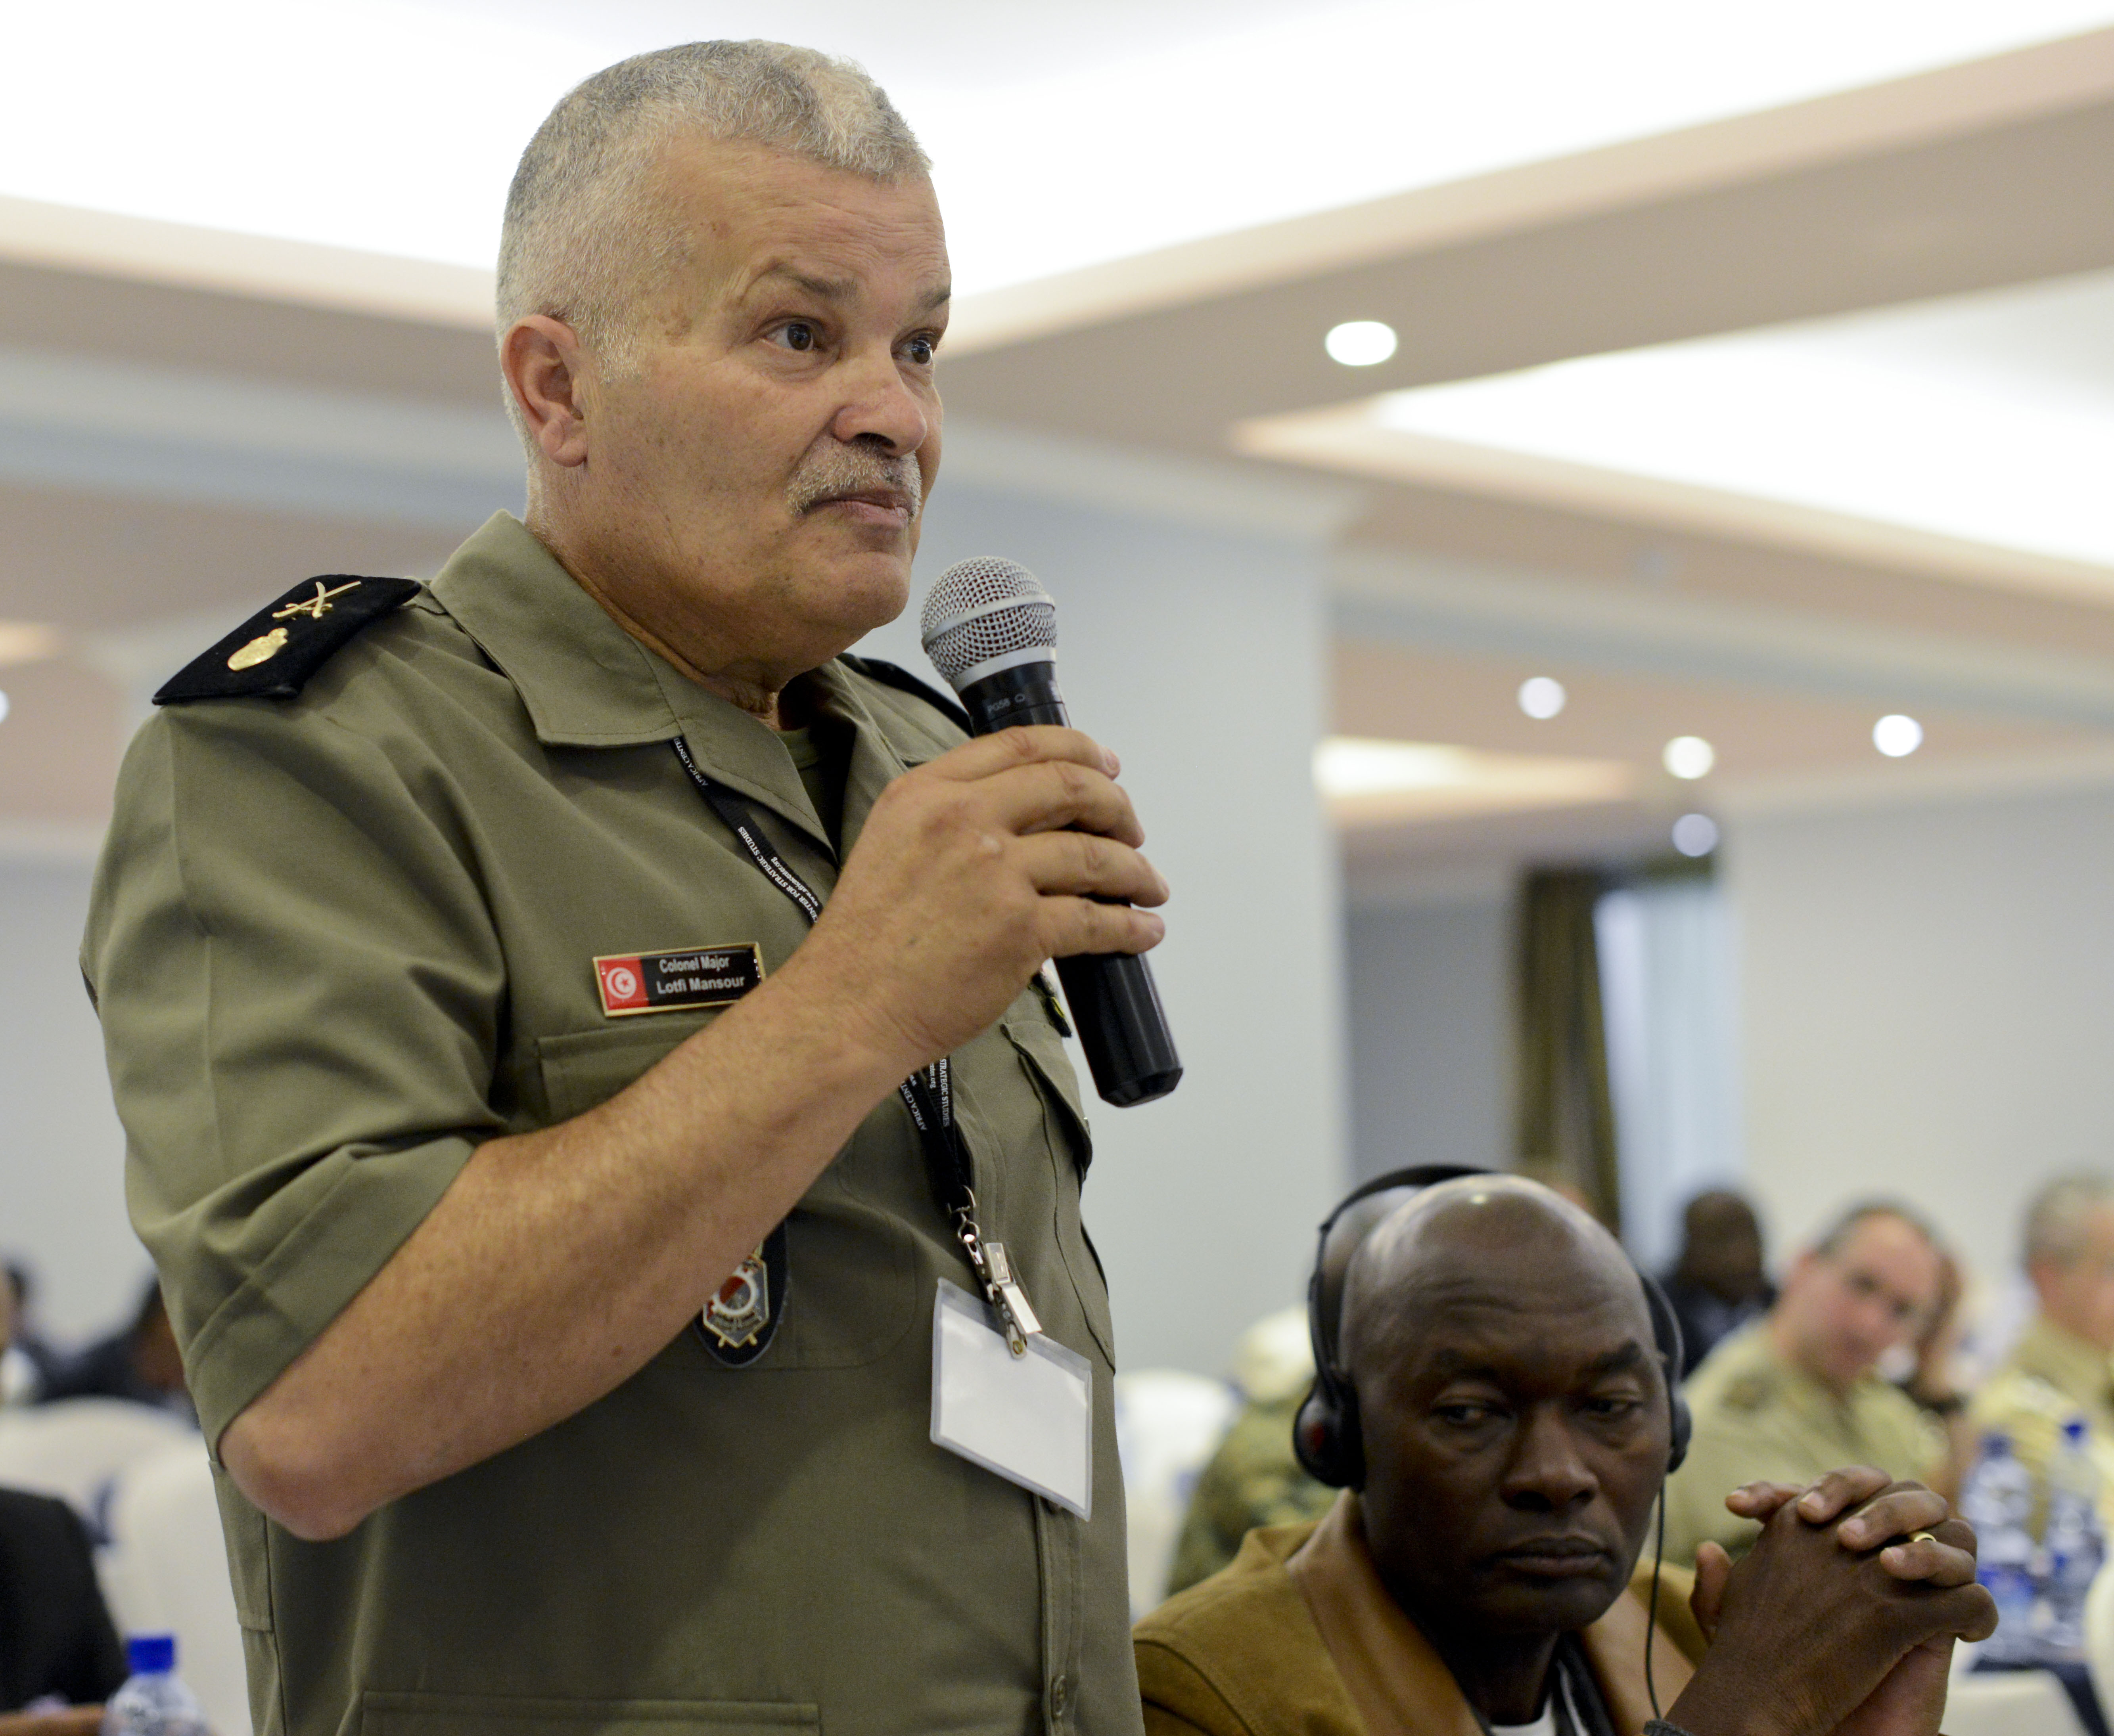 Tunisia Army Col. Maj. Lotfi Mansour asks panelists a question during the Africa Logistics Forum in Addis Ababa, Ethiopia, June 23, 2015. U.S. Africa Command sponsored the three-day forum in partnership with the Africa Union and the Africa Center for Strategic Studies.